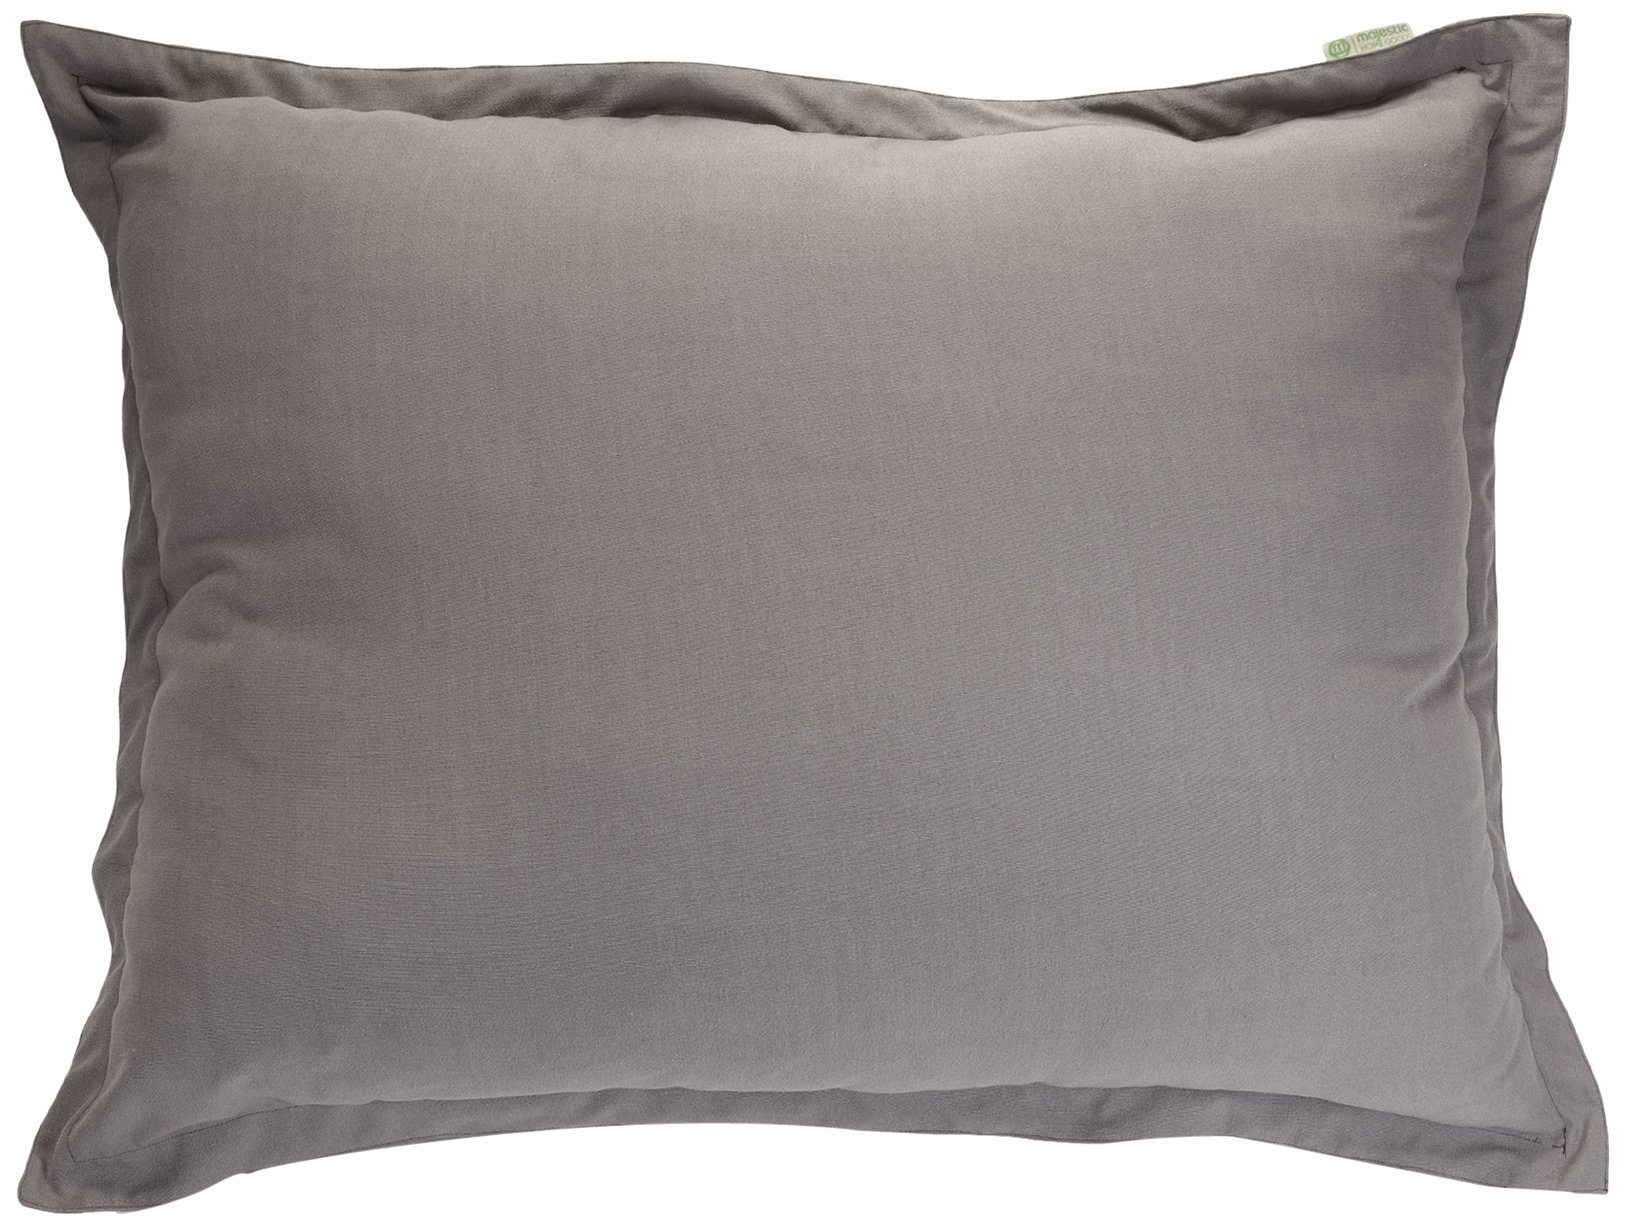 Majestic Home Goods Wales Floor Pillow, Gray by Majestic Home Goods